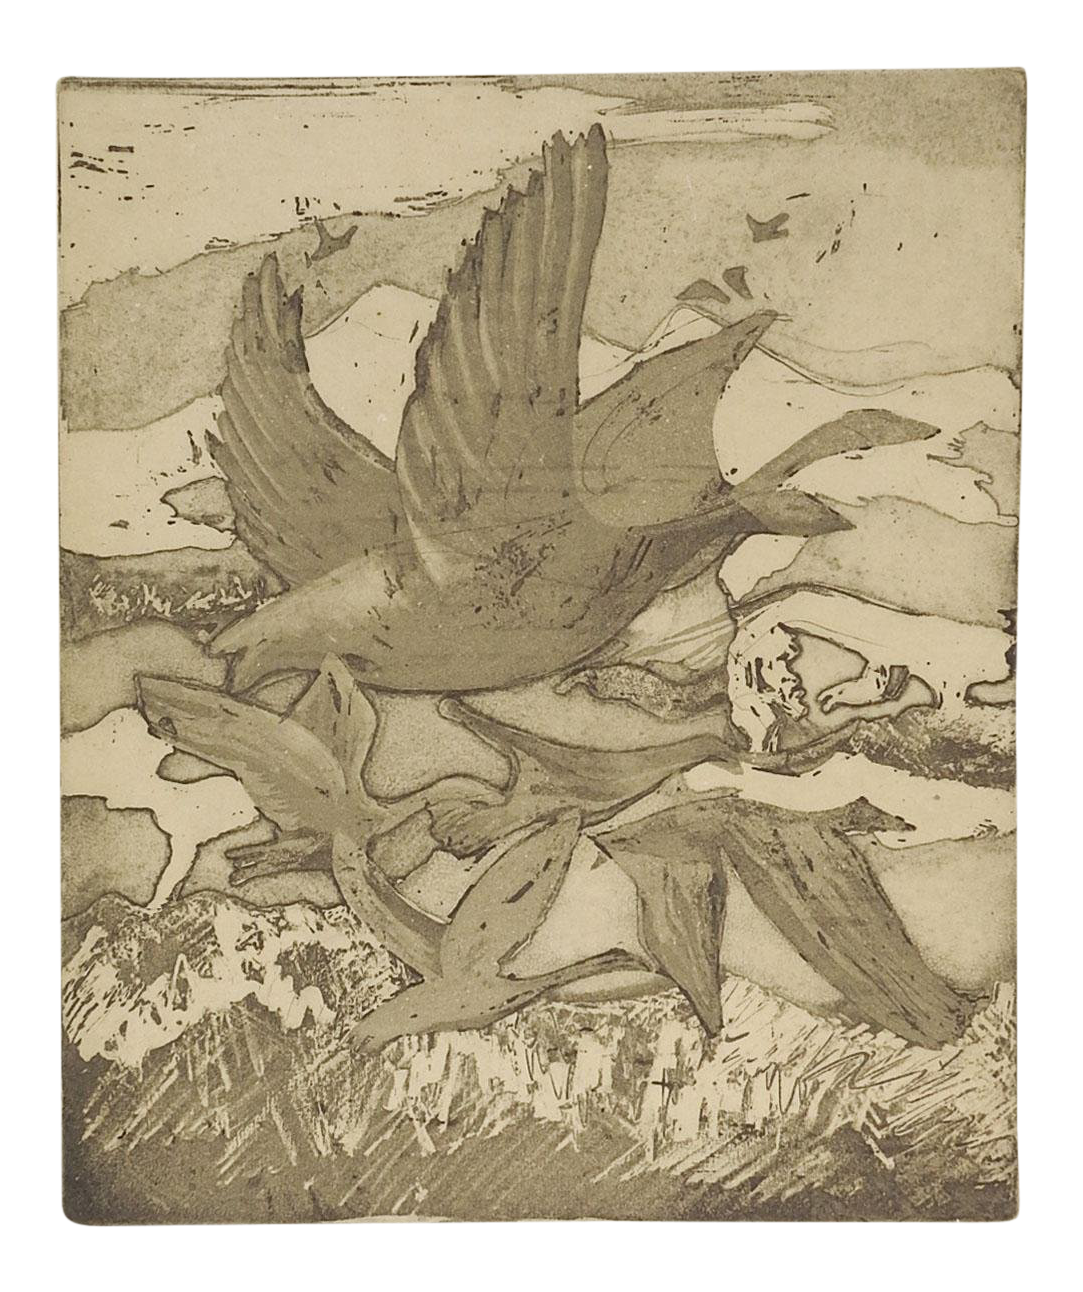 Etching drawing bird. Migrating geese abstract chairish